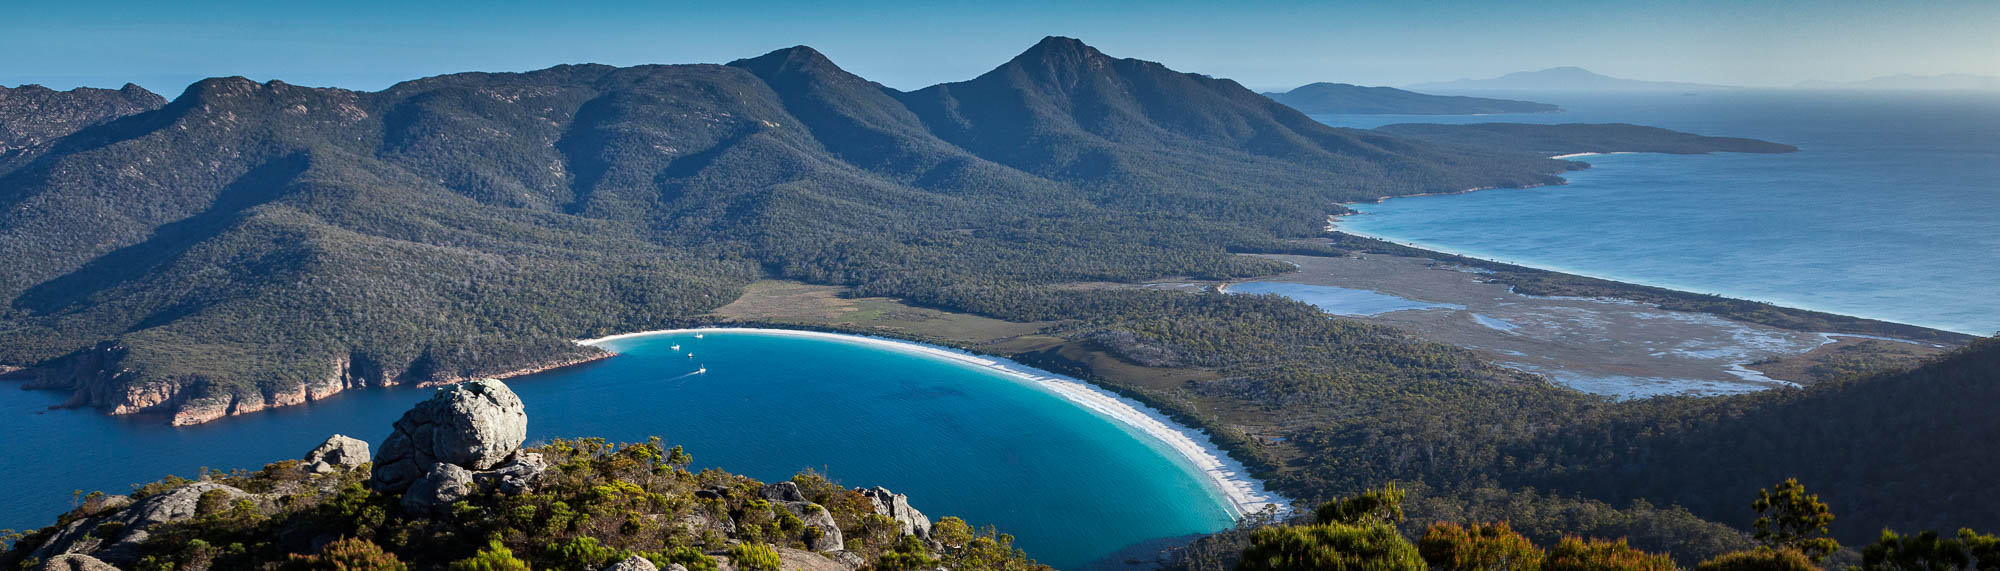 Wineglass Bay from Mt Amos, Freycinet National Park, Tasmania